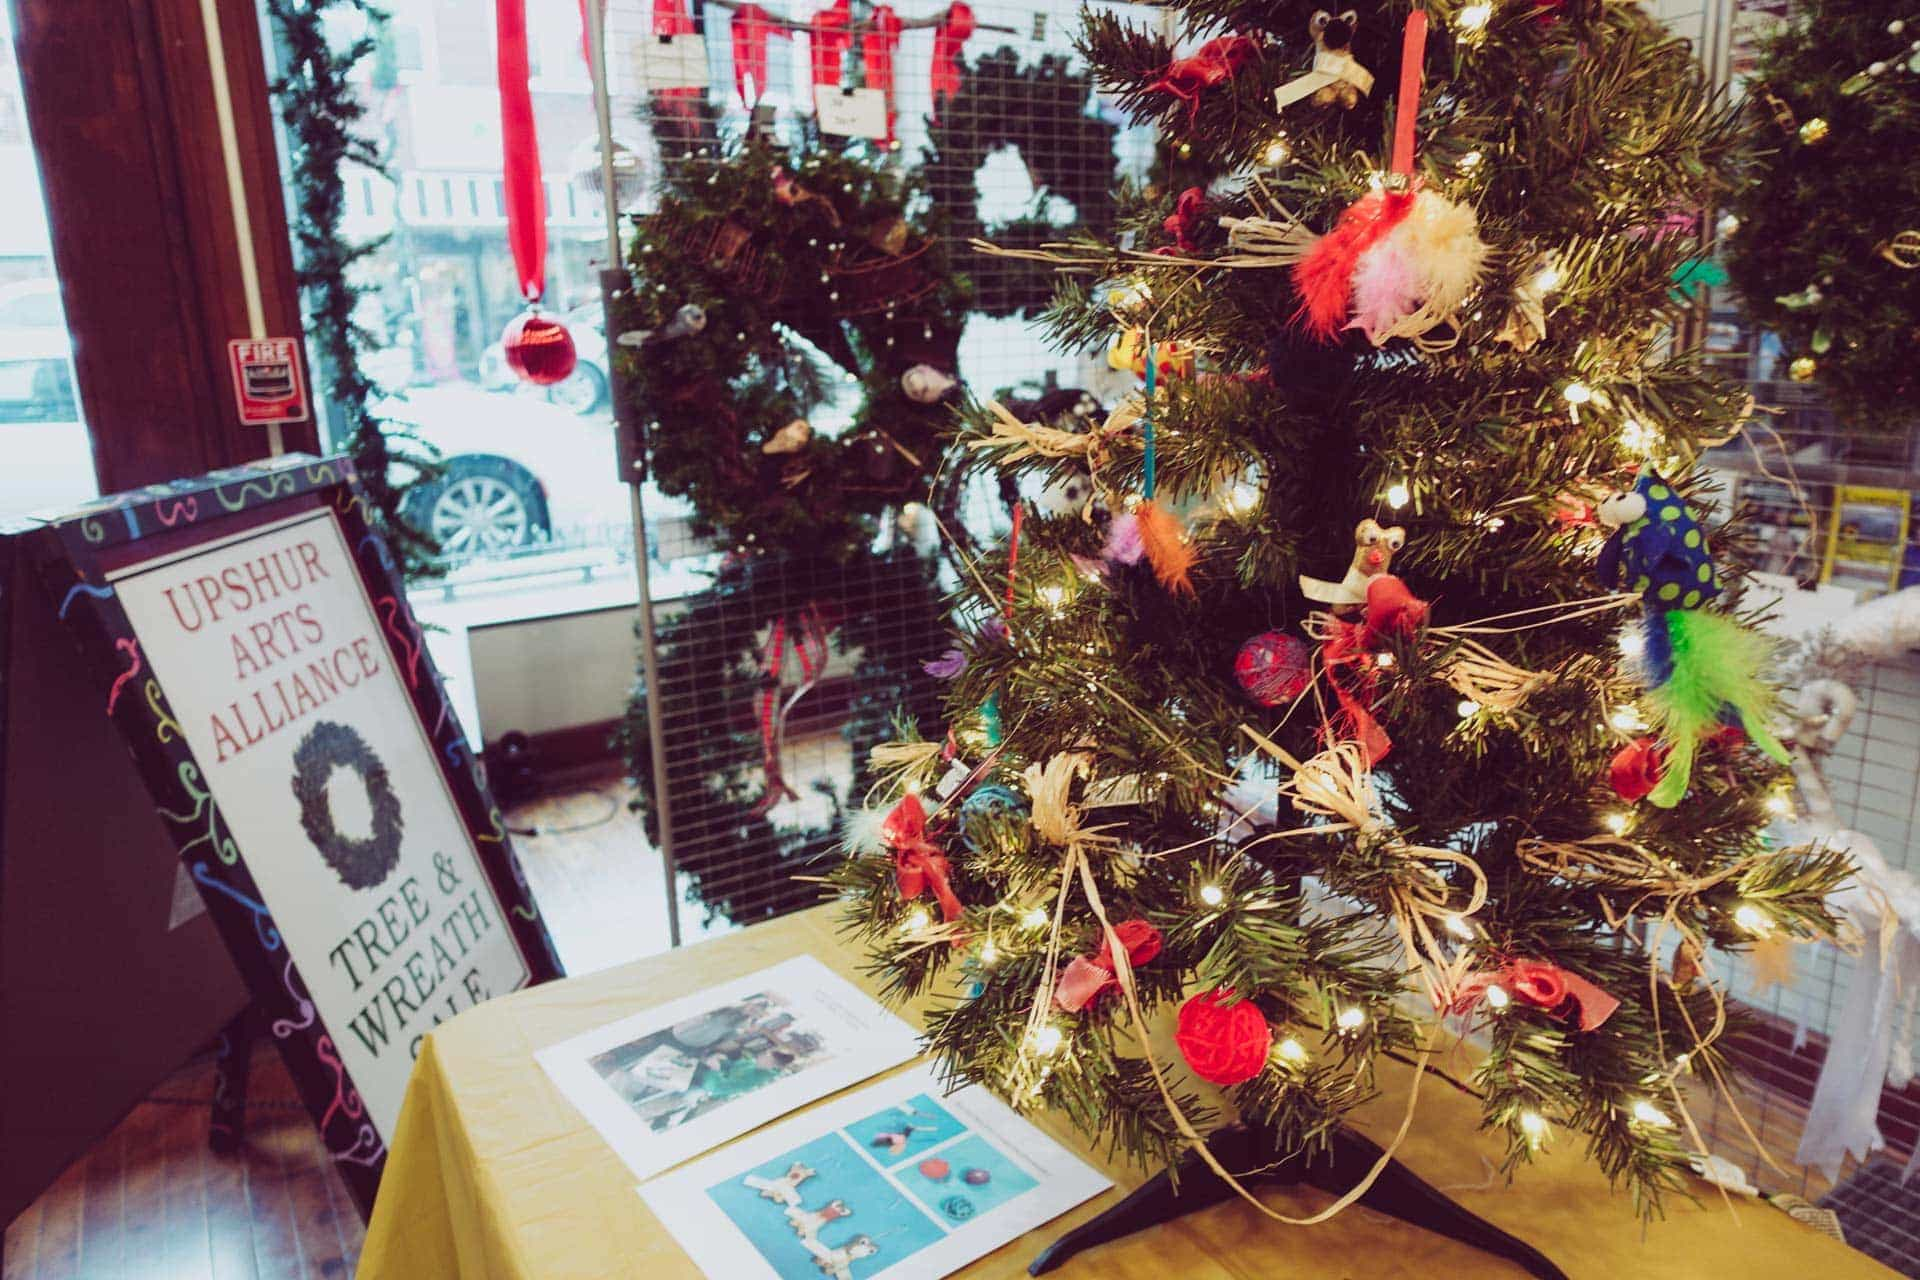 Last chance to support the arts and pick up some festive handcrafted holiday décor